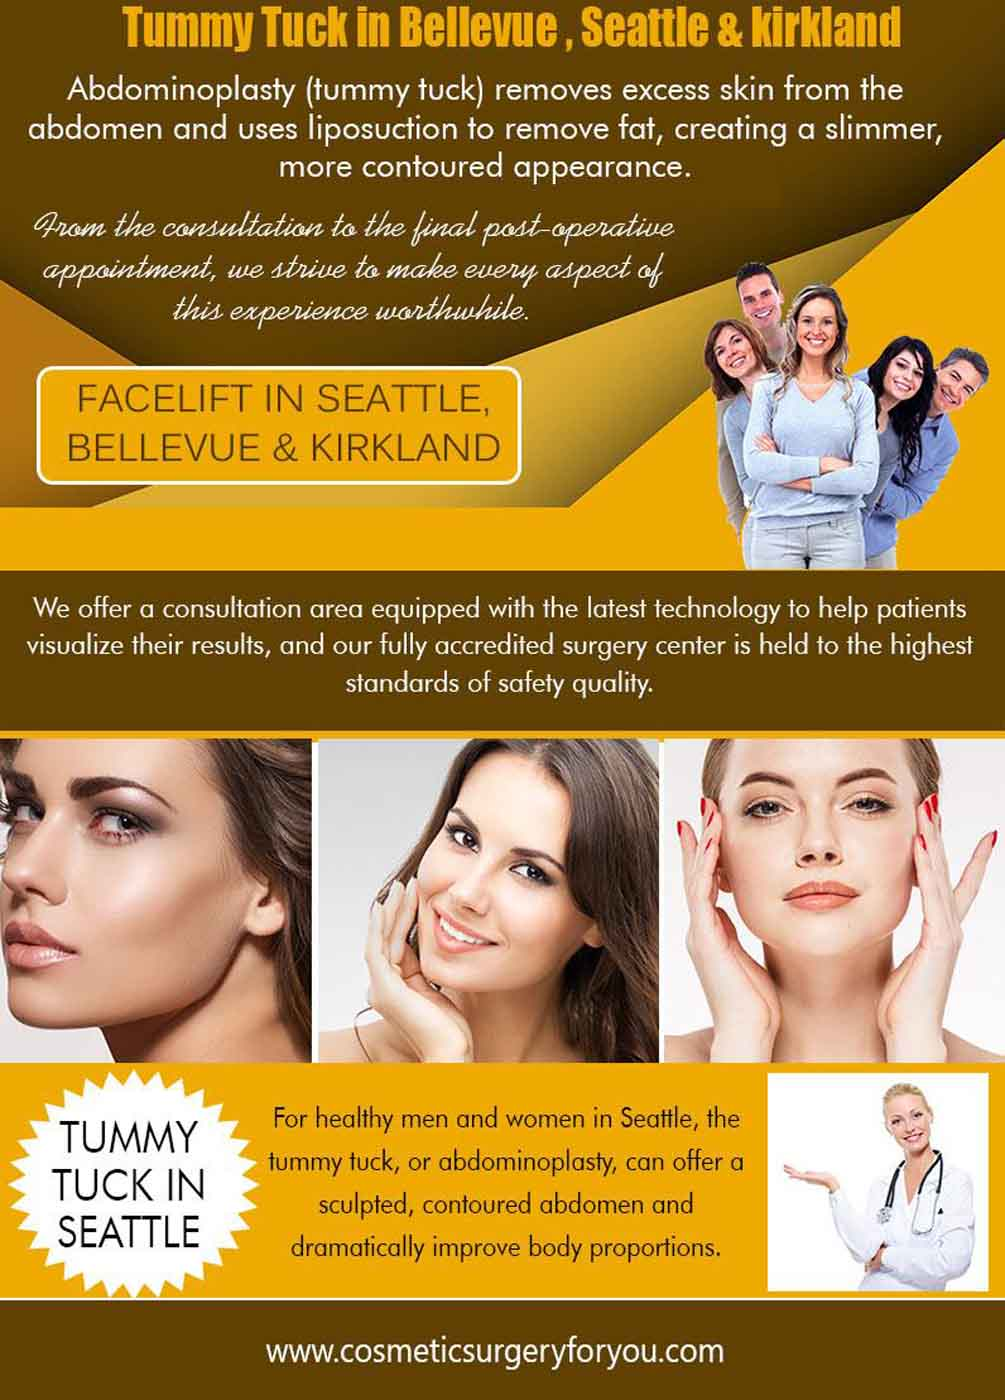 Tummy Tuck In Bellevue, Kirkland, Seattle